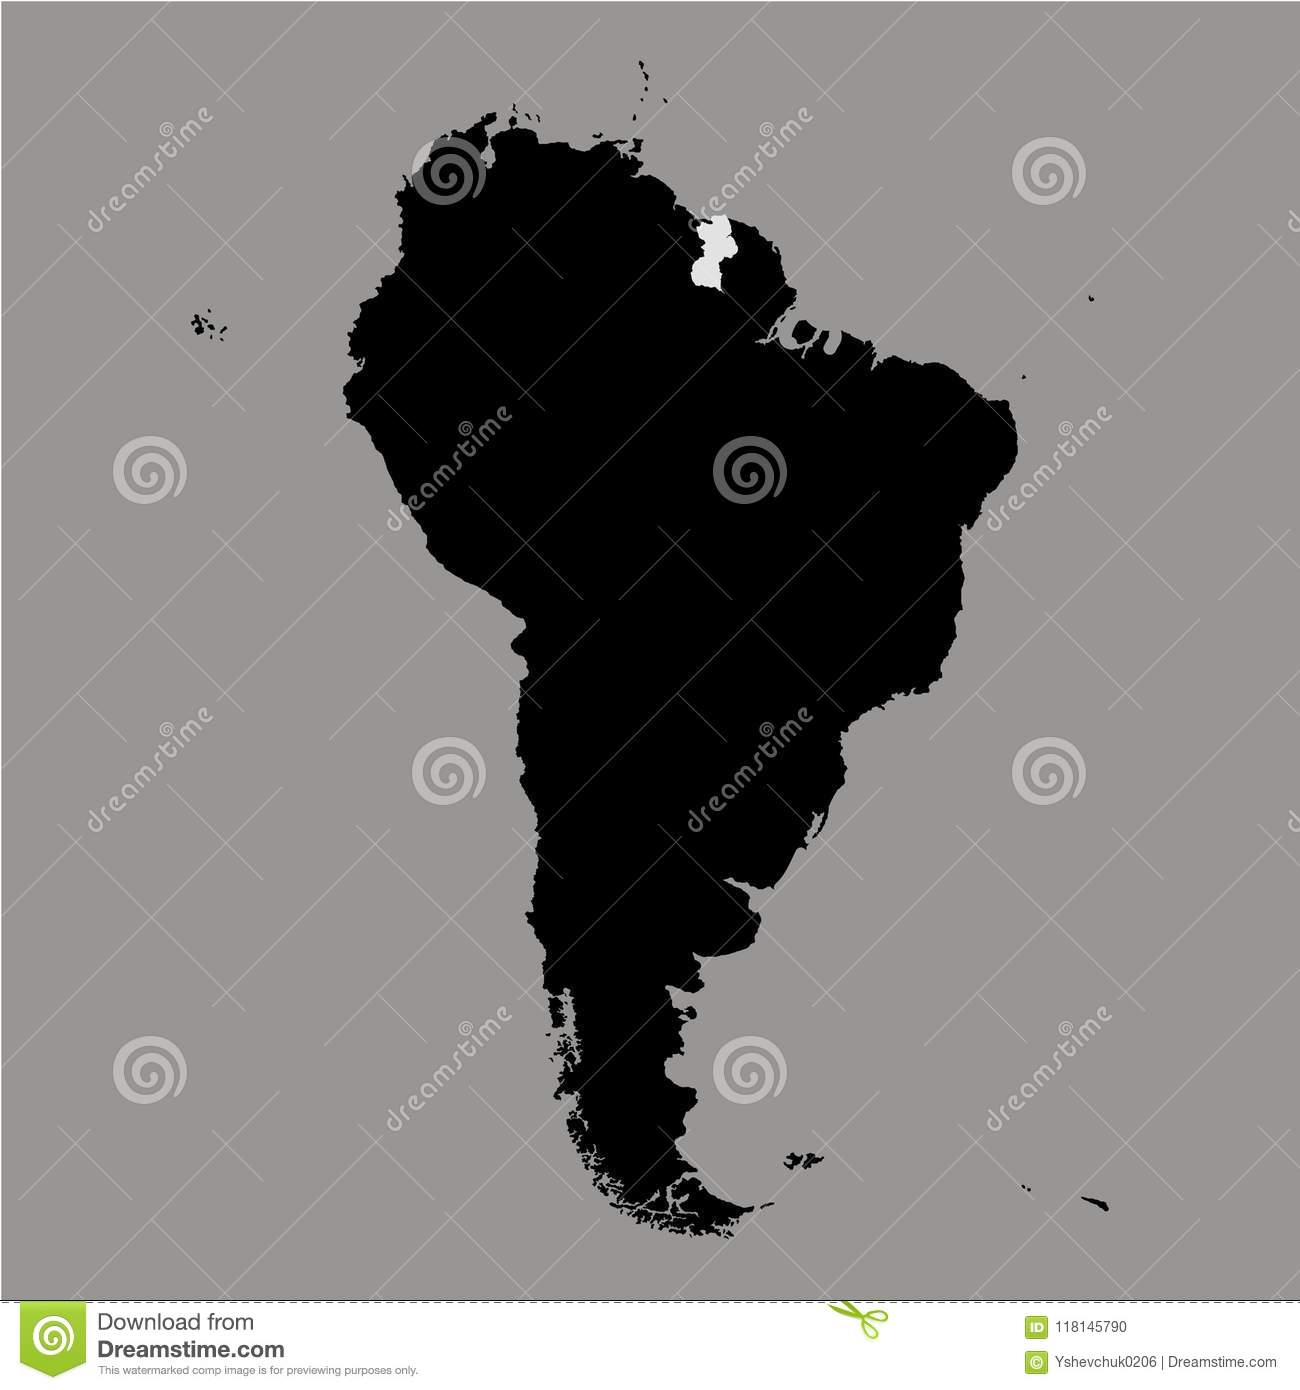 Territory Of Guyana On South America Map On The Grey Background ...